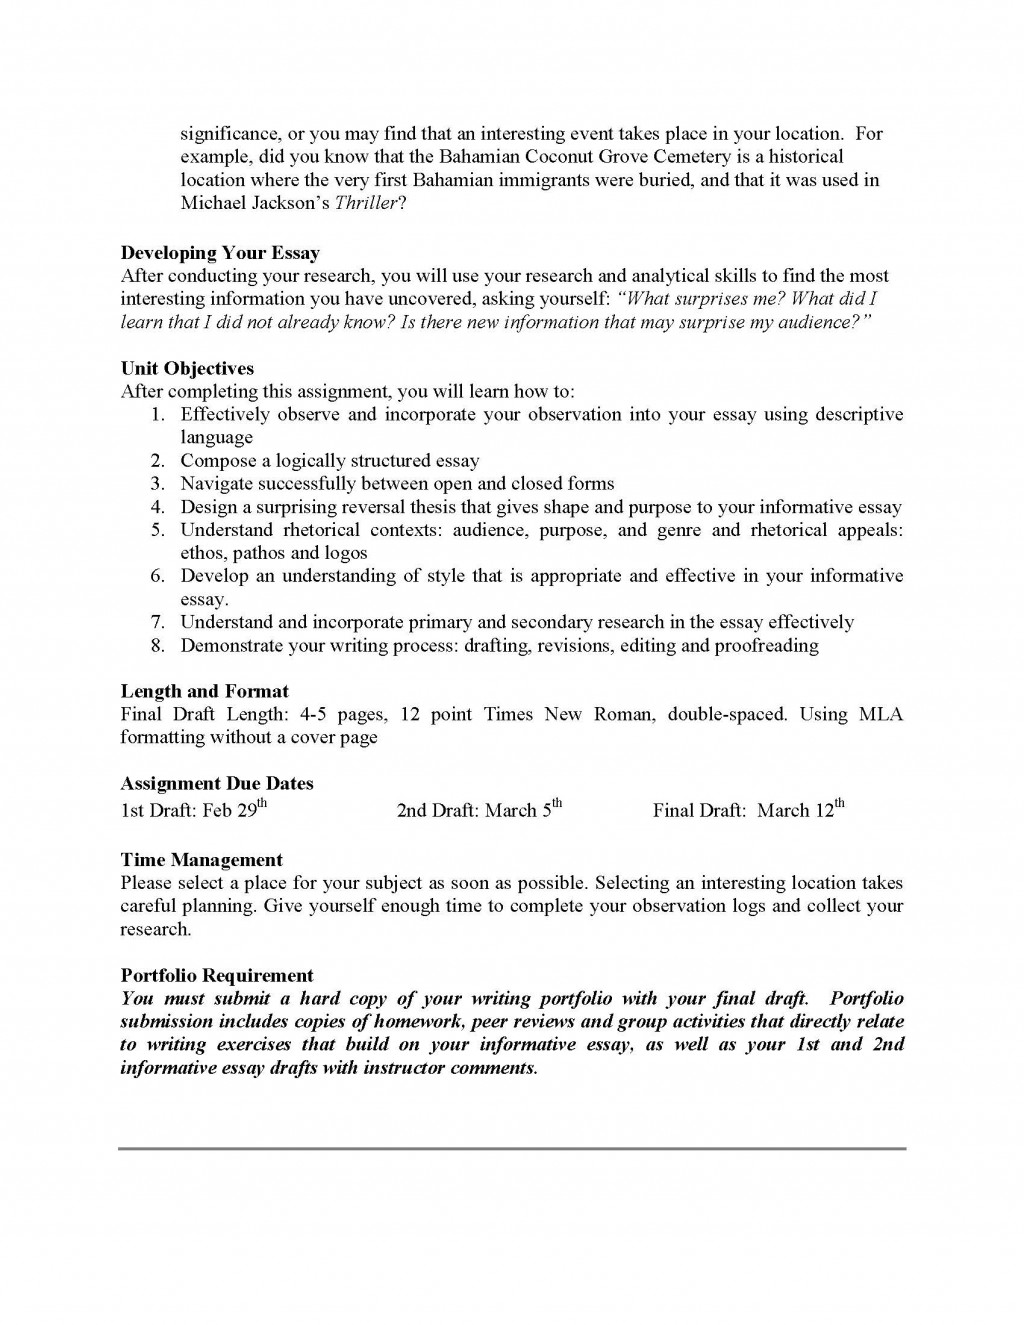 014 Informative Essay Unit Assignment Page 2 Dreaded Prompts High School Topics 2018 Middle Large